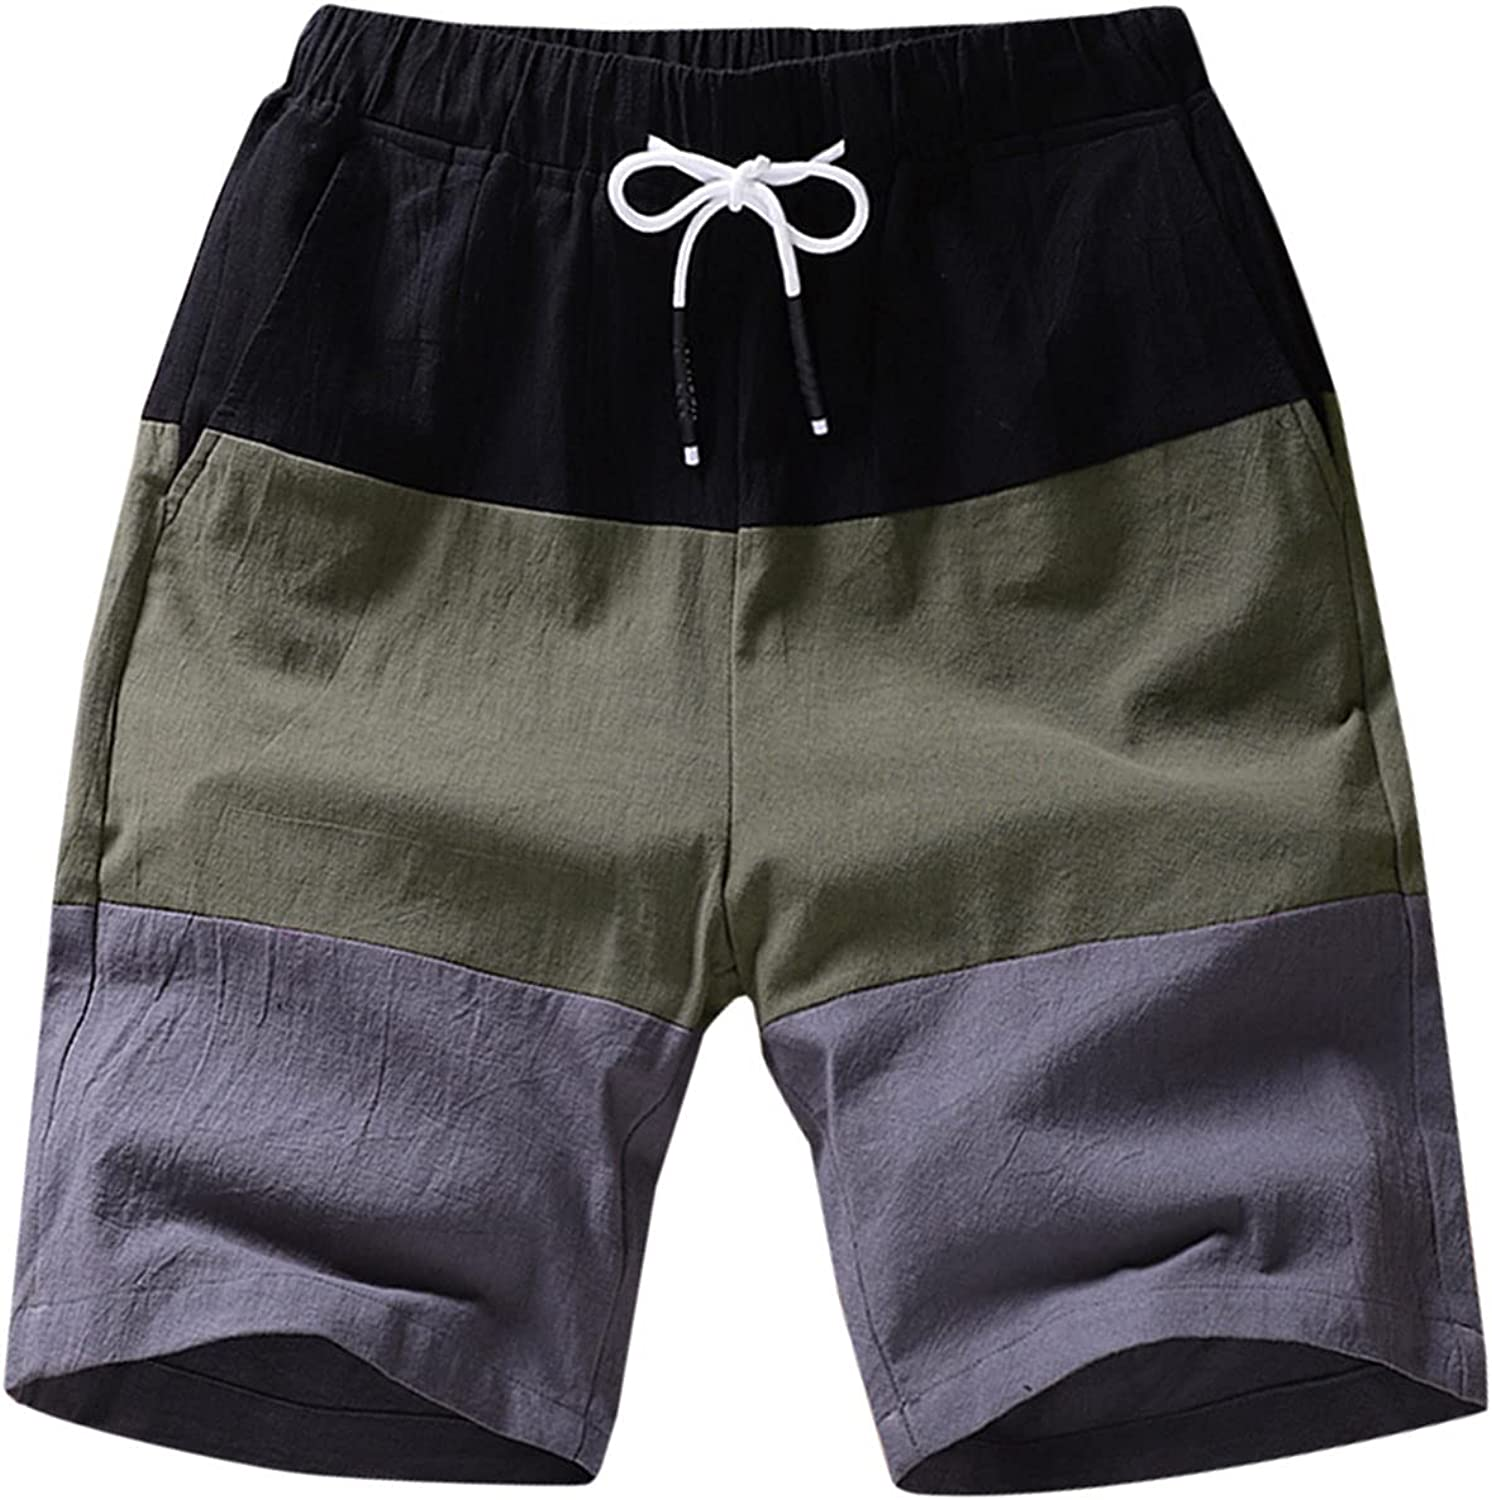 Men's Casual Beach Shorts with Drawstring,Plus Size Loose Breathable Elastic Waist Color Matching Summer Cotton Shorts